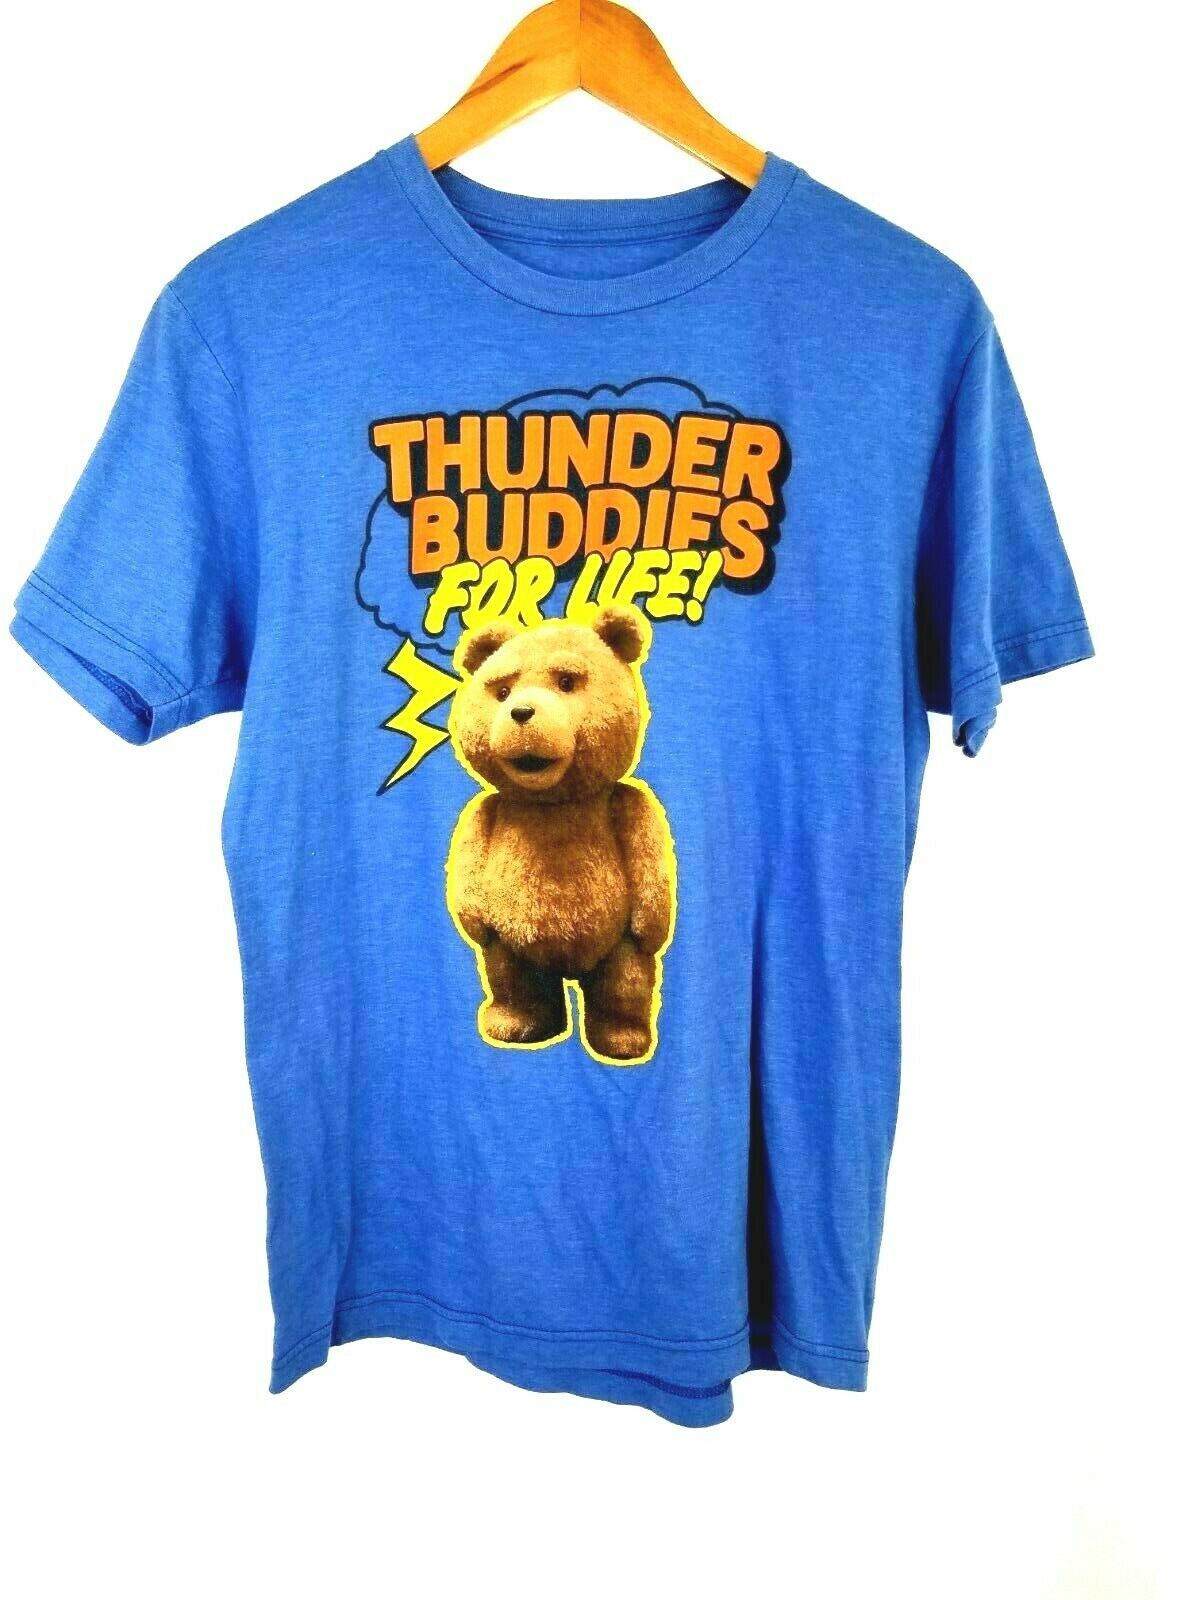 Ted The Movie Shirt Thunder Buddies For Life Mens Medium T Shirt Ripple Junction